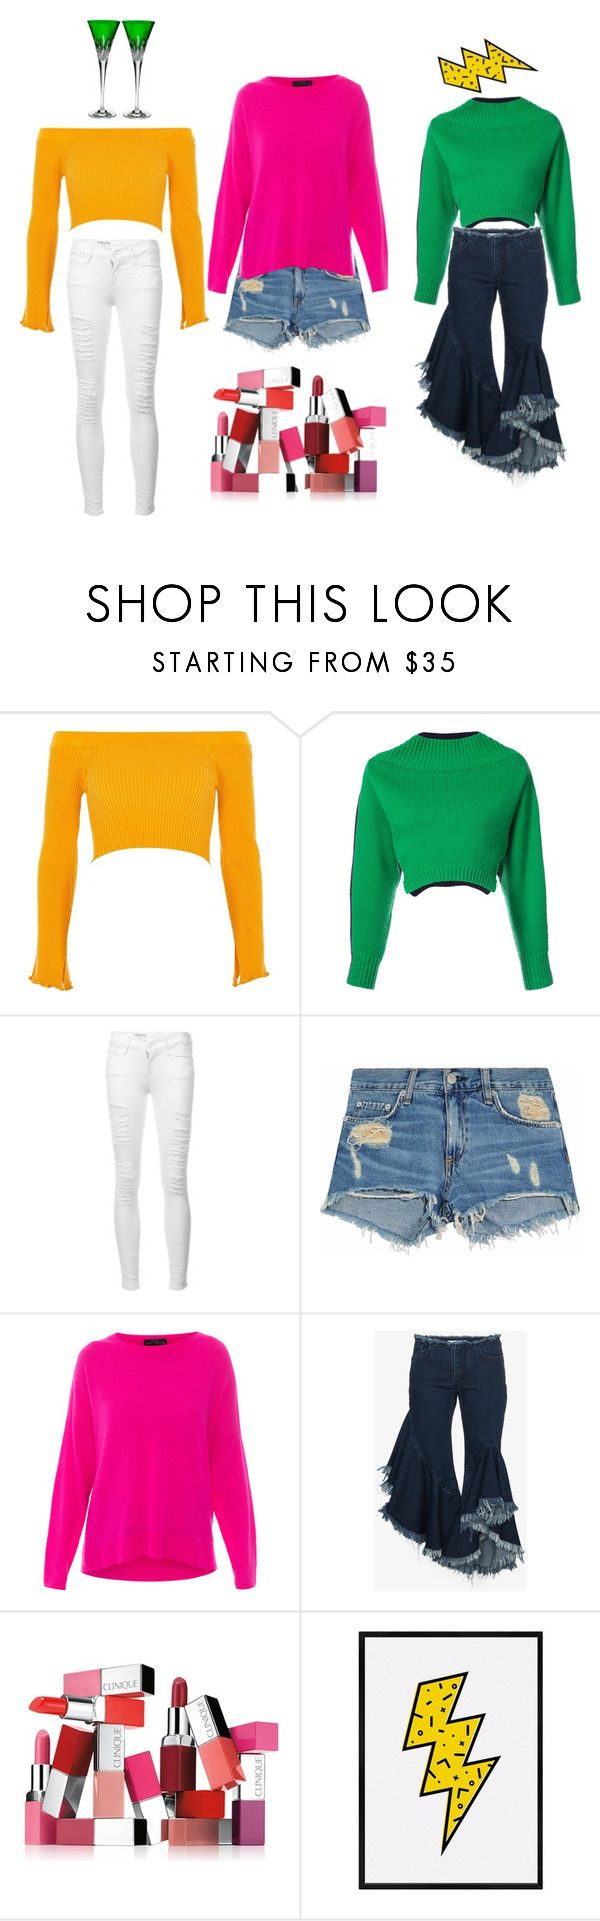 """""""Sweater looks"""" by miloni-jhaveri ❤ liked on Polyvore featuring River Island, Monse, Frame, rag & bone/JEAN, MARC CAIN, Marques'Almeida, Clinique and Waterford"""